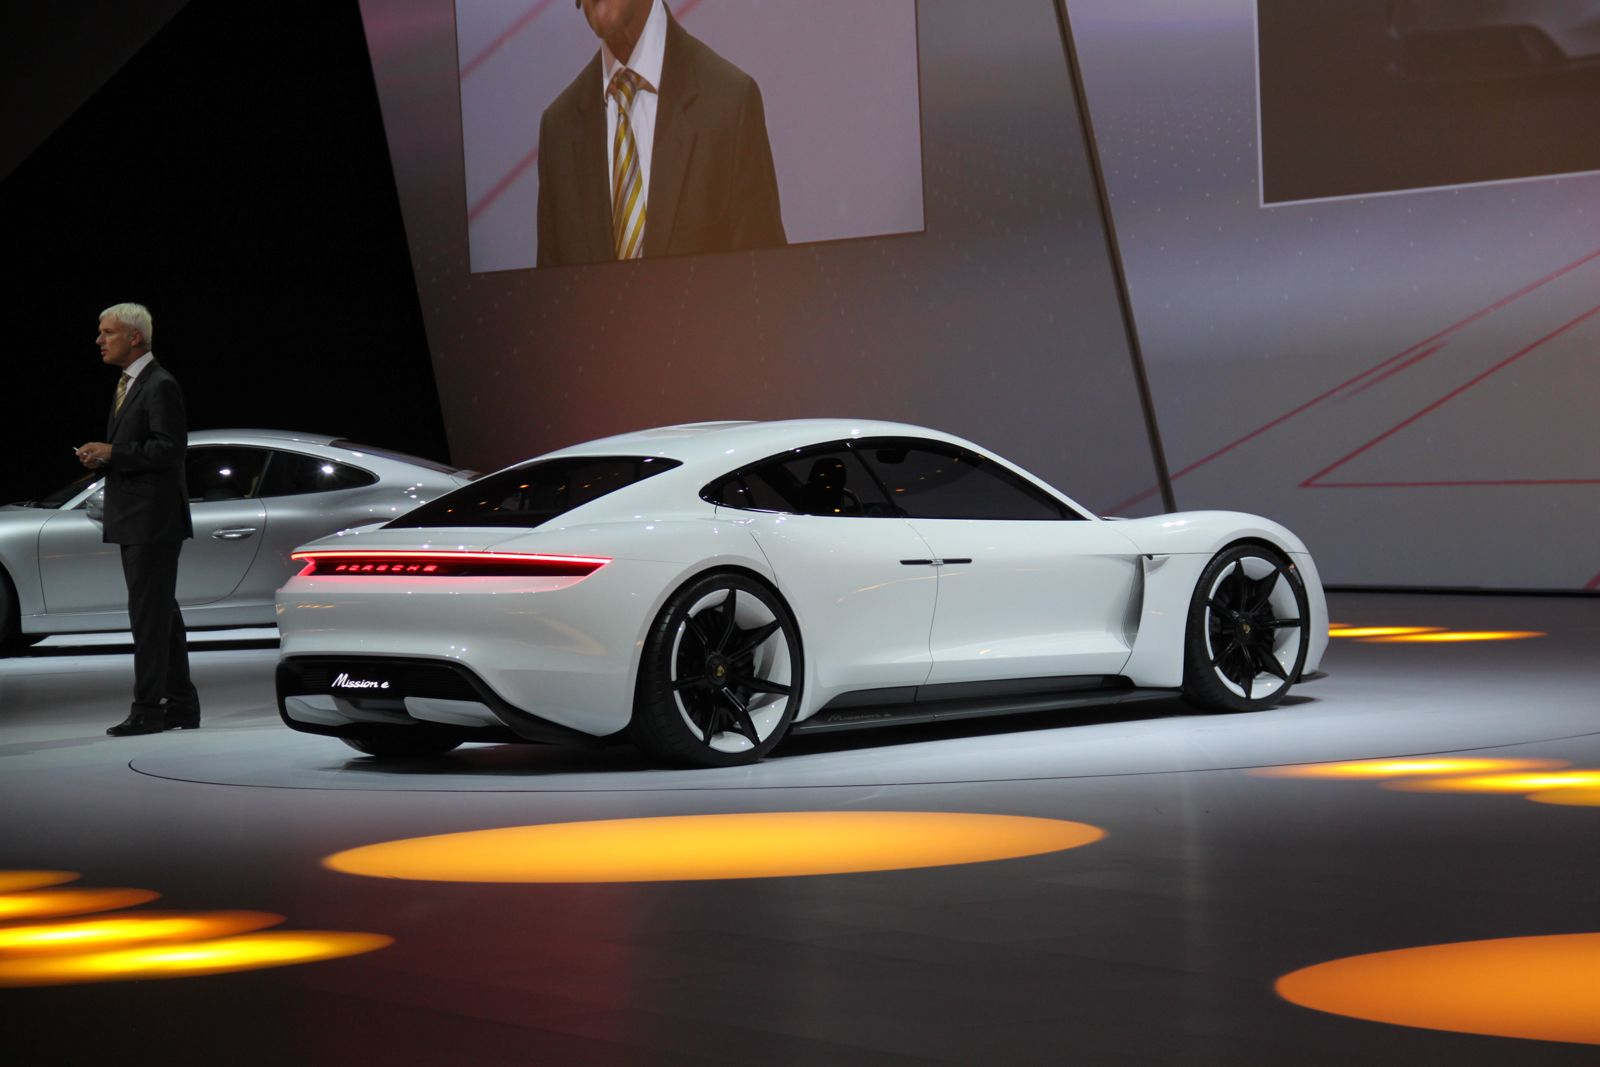 For more about the Porsche Mission-E Concept , see our previous post ...